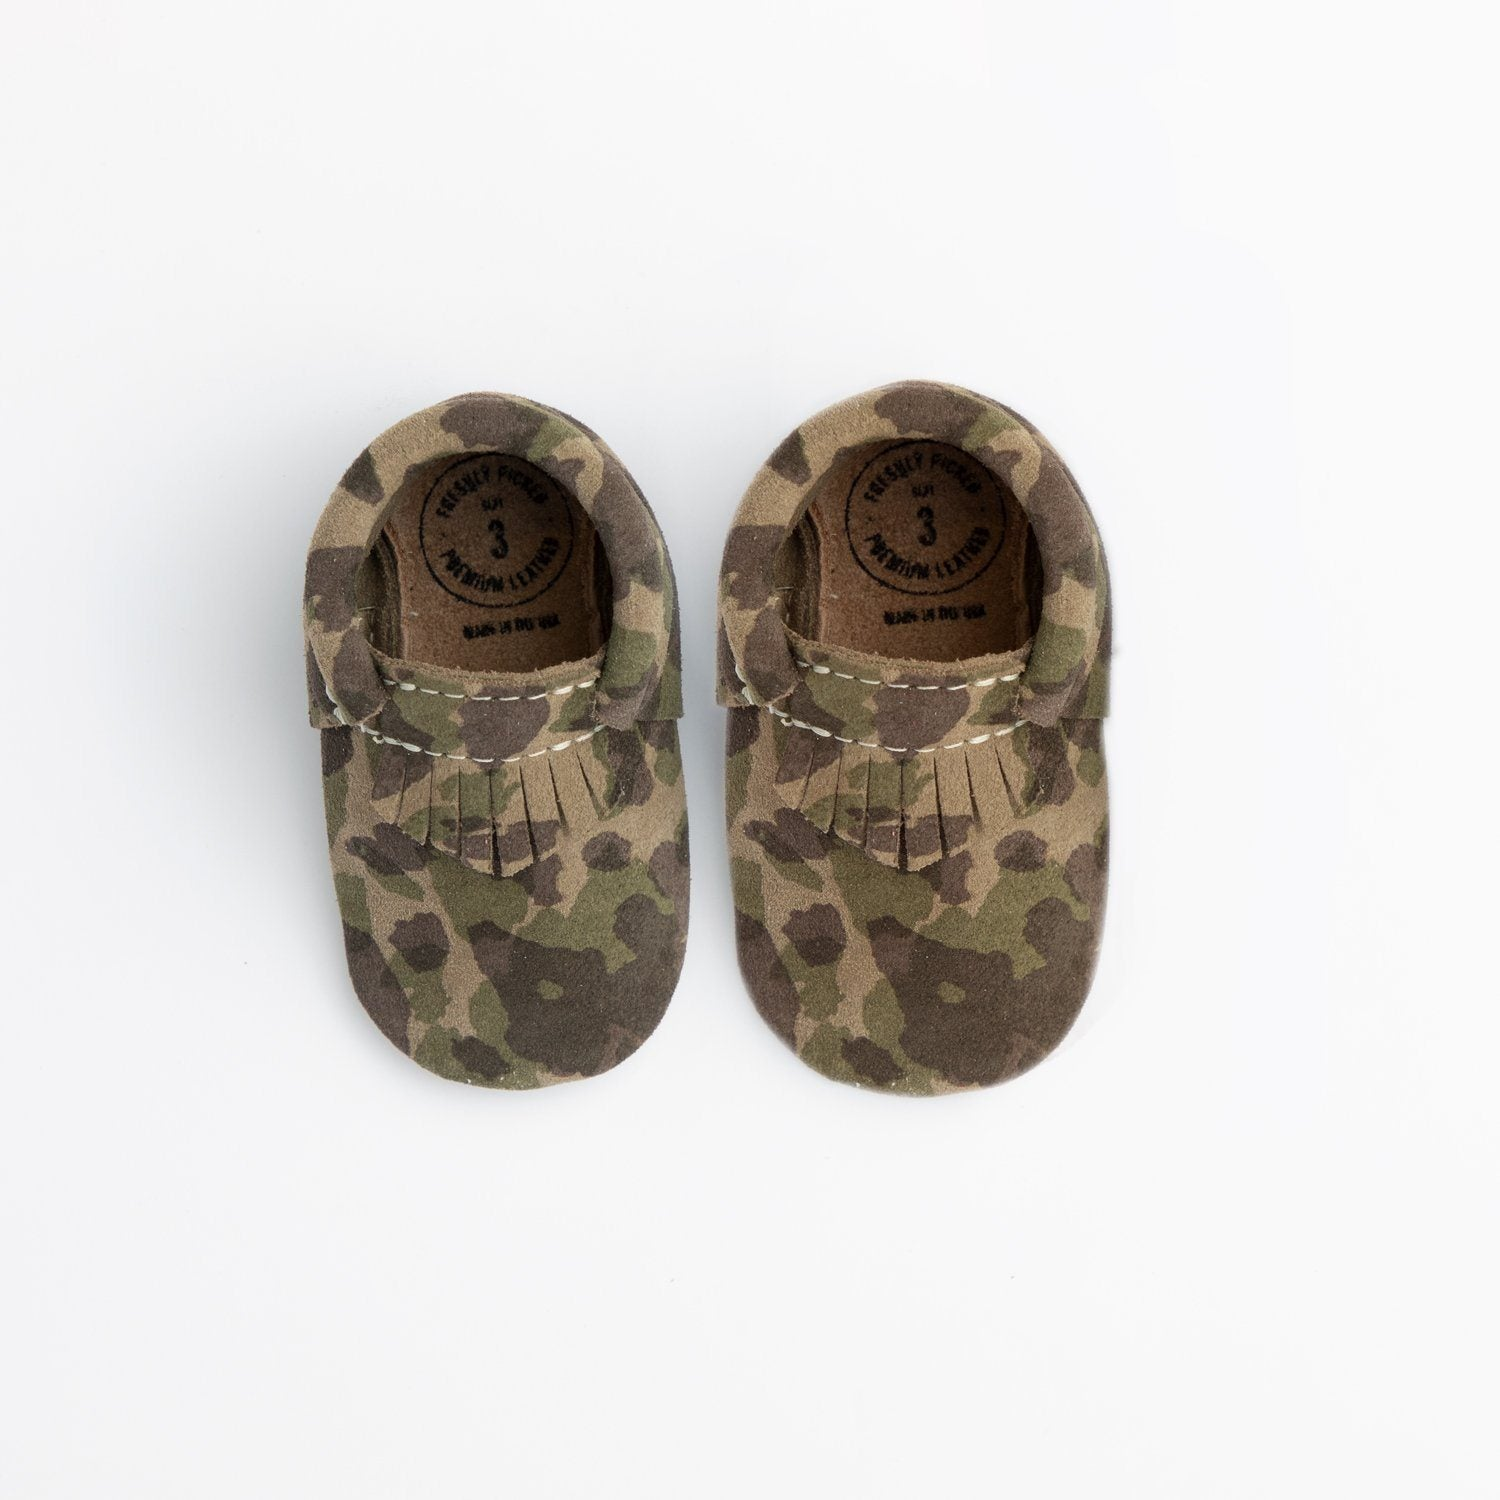 Green Suede Camo City Mocc Mini Sole Mini Sole City Mocc mini sole